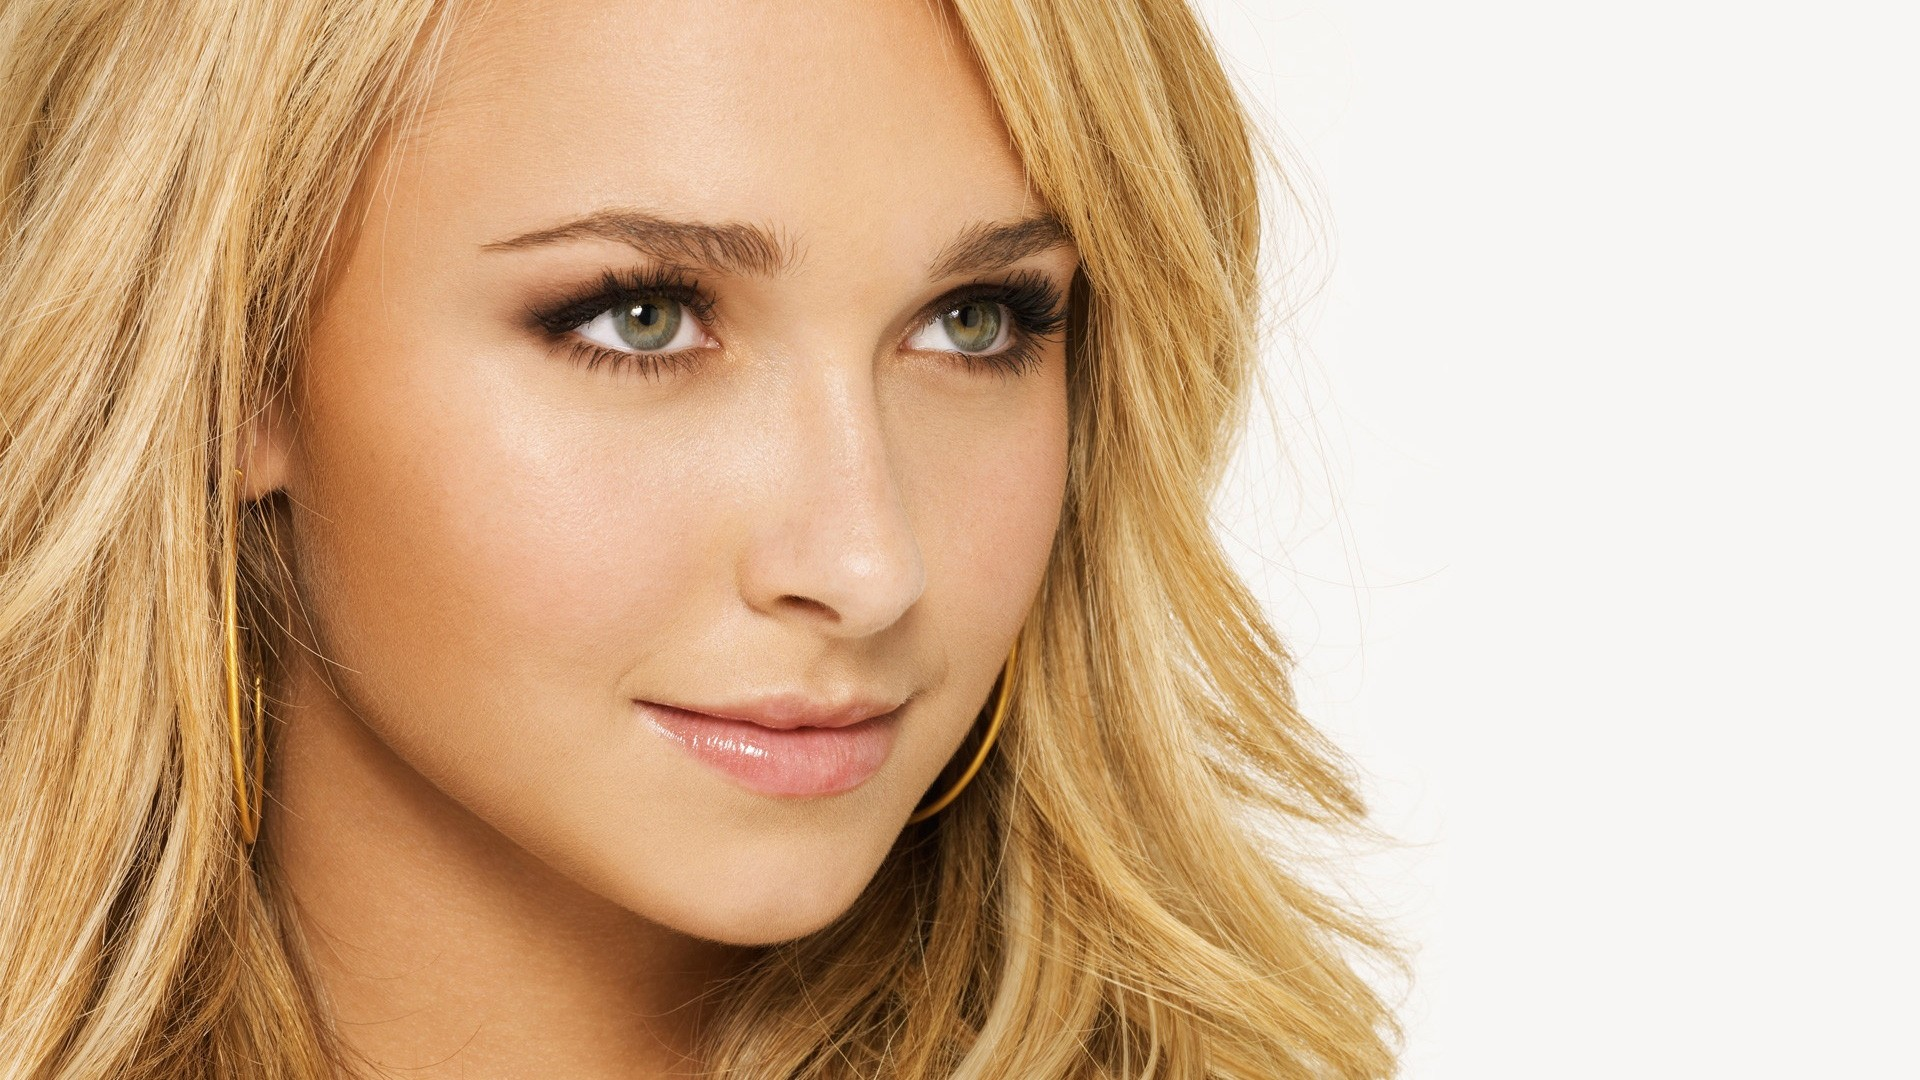 Download now full hd wallpaper hayden panettiere face mascara pretty smile  …